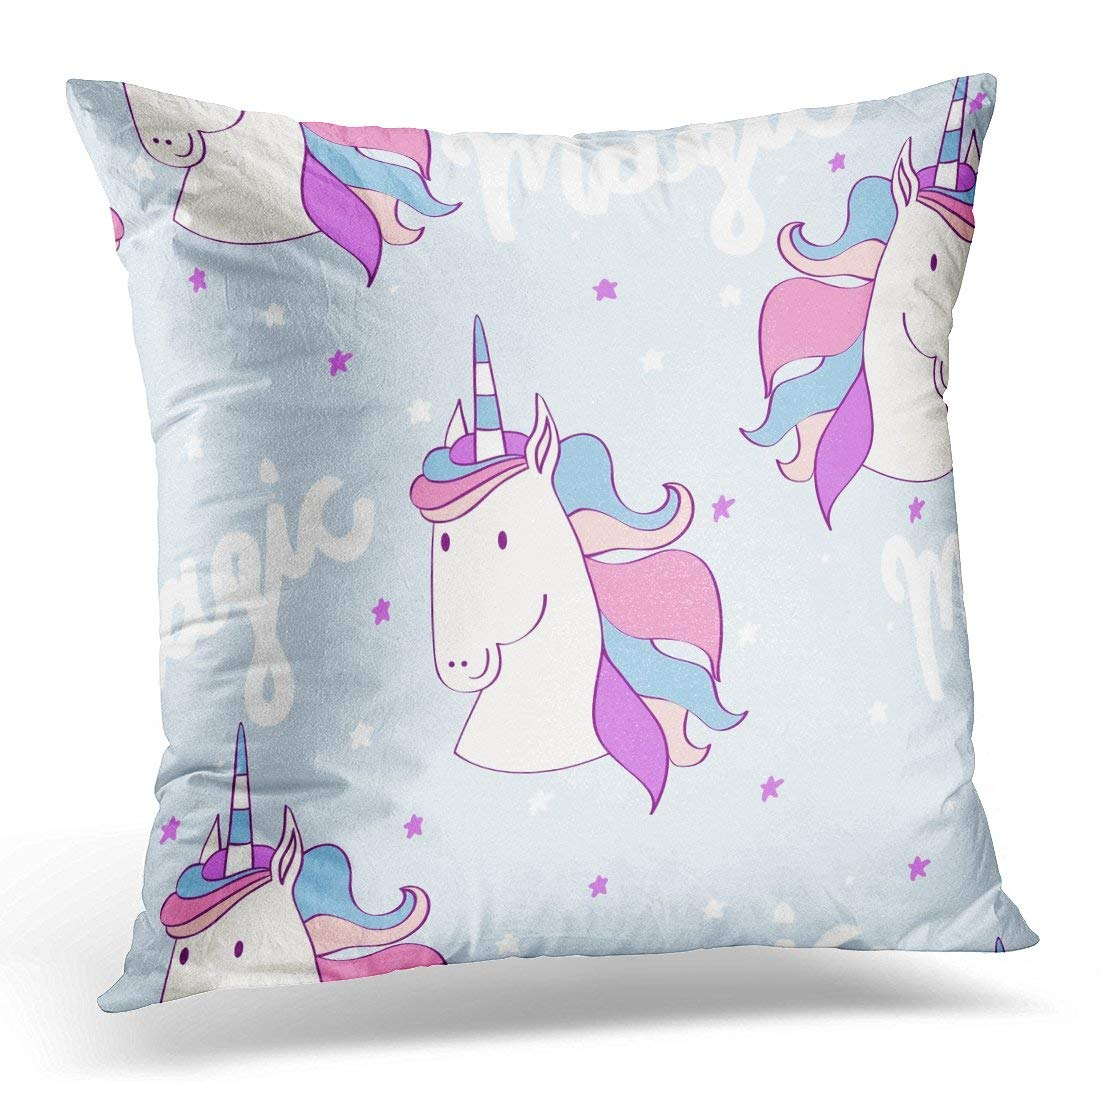 ARHOME Blue Animal Magic Cute Unicorn with Stars Pink Cartoon Pillow Case Pillow Cover 18x18 inch